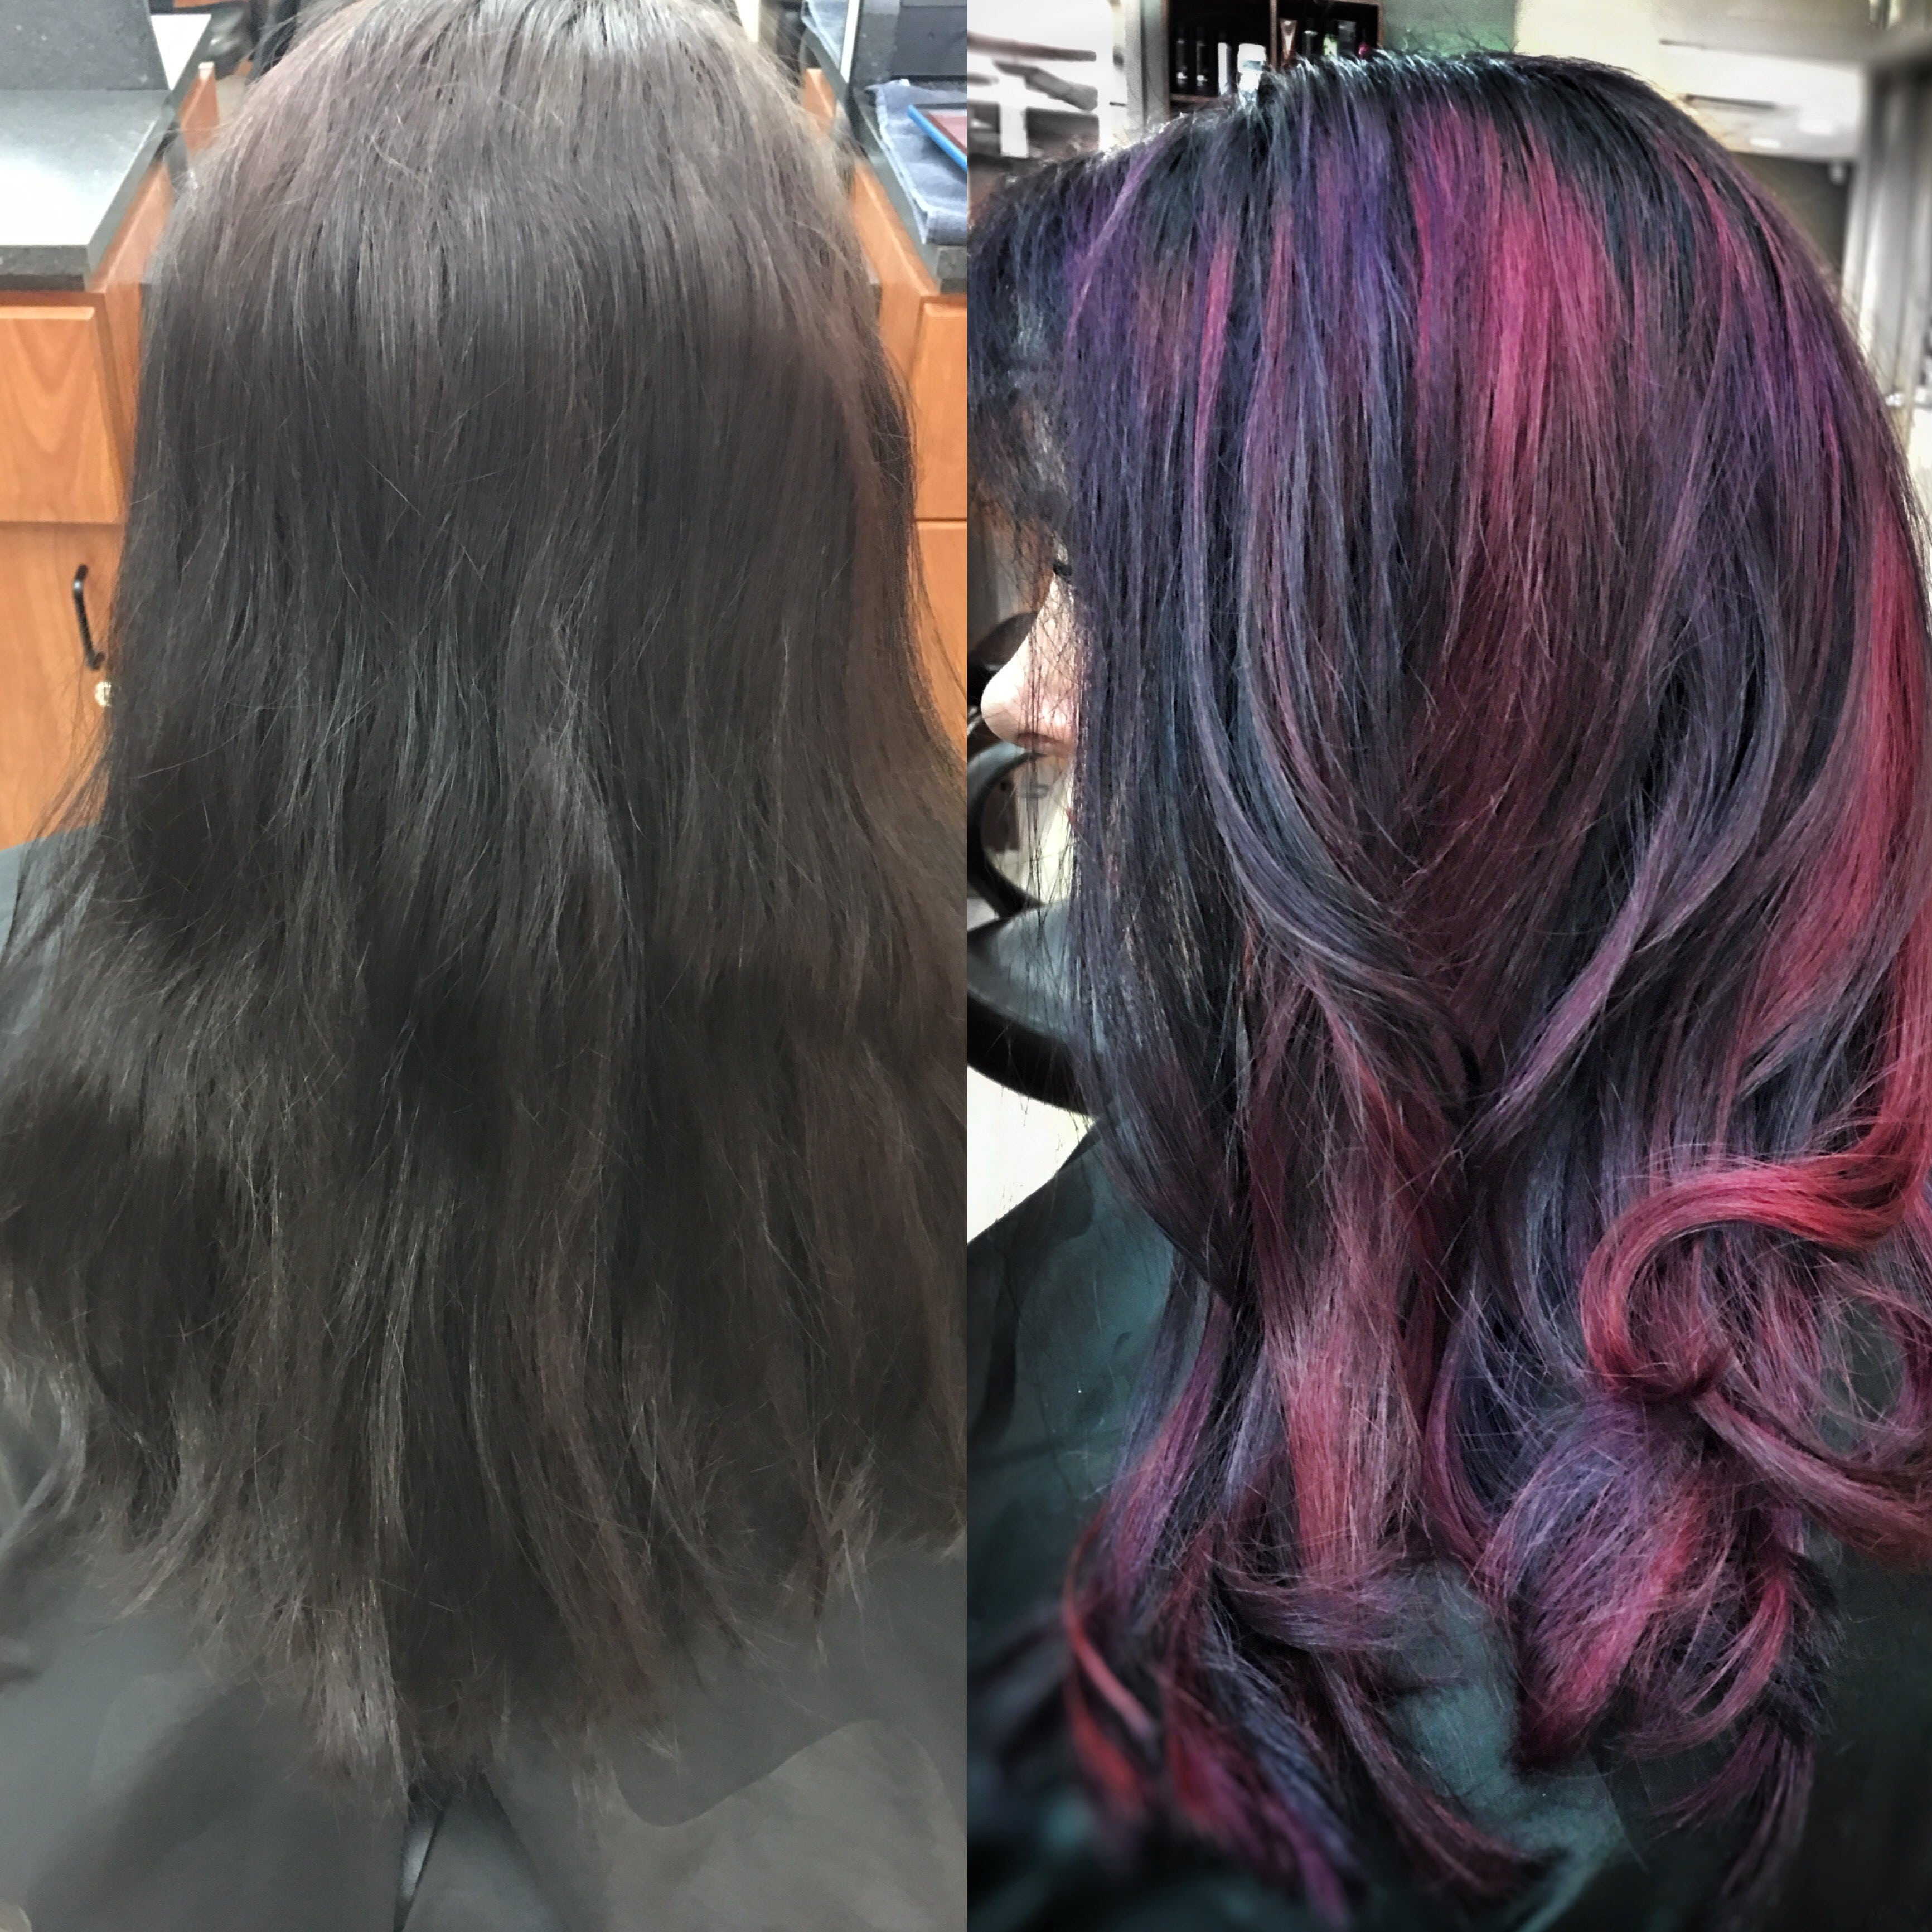 Techniques Salon and spa client with creative color before and after pic